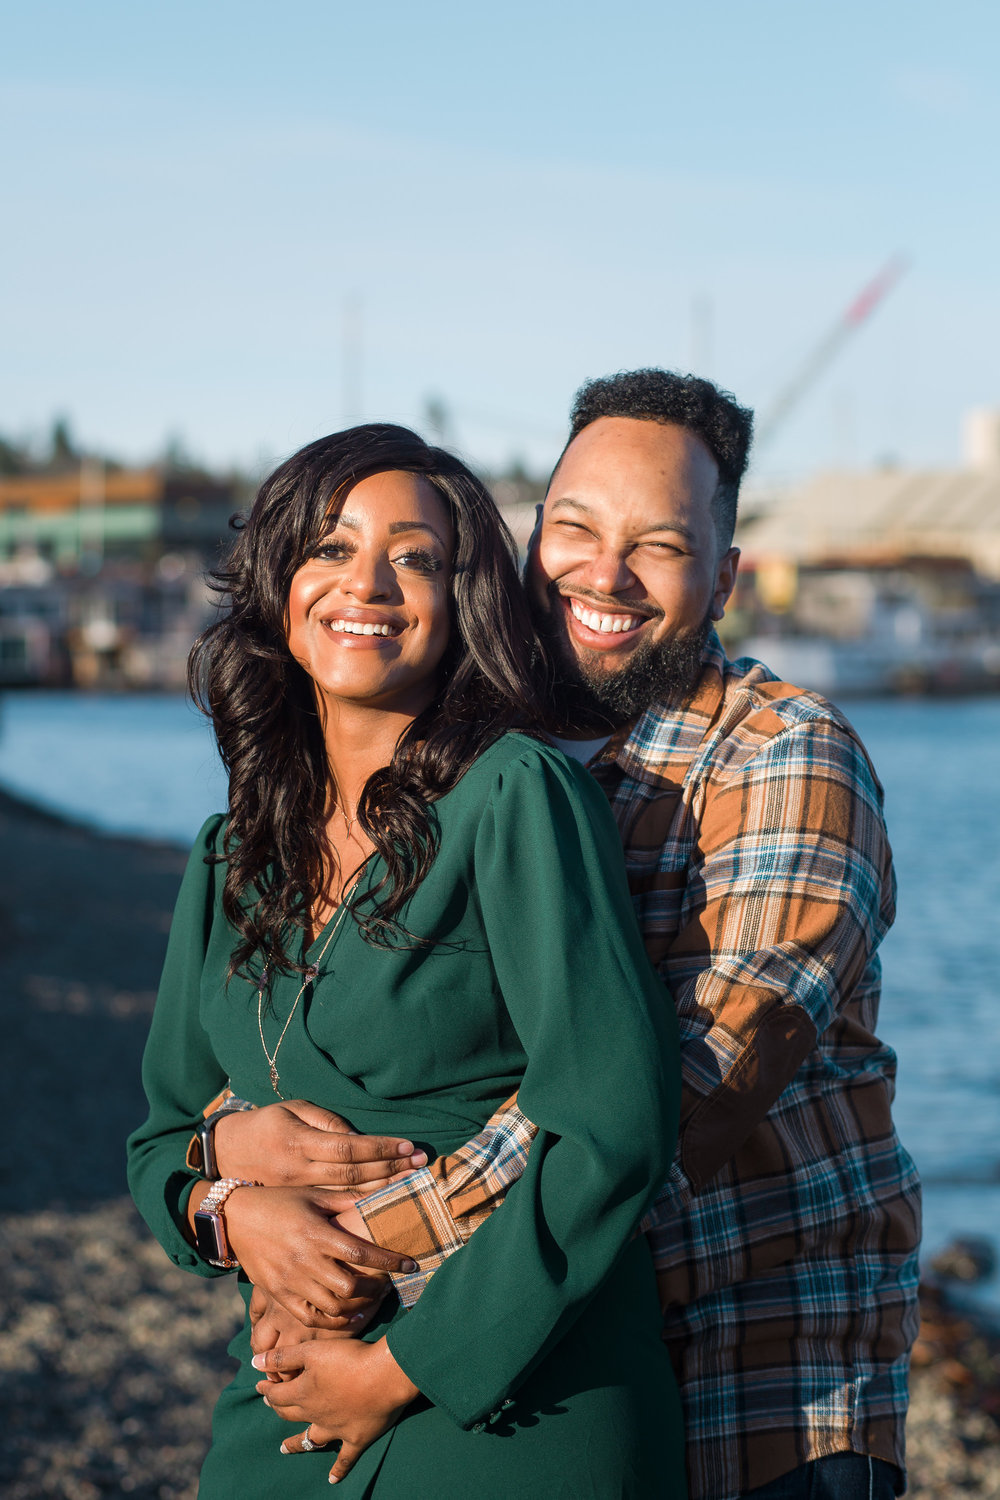 Gas Works Park Engagement Session by Zoe Litaker Photography